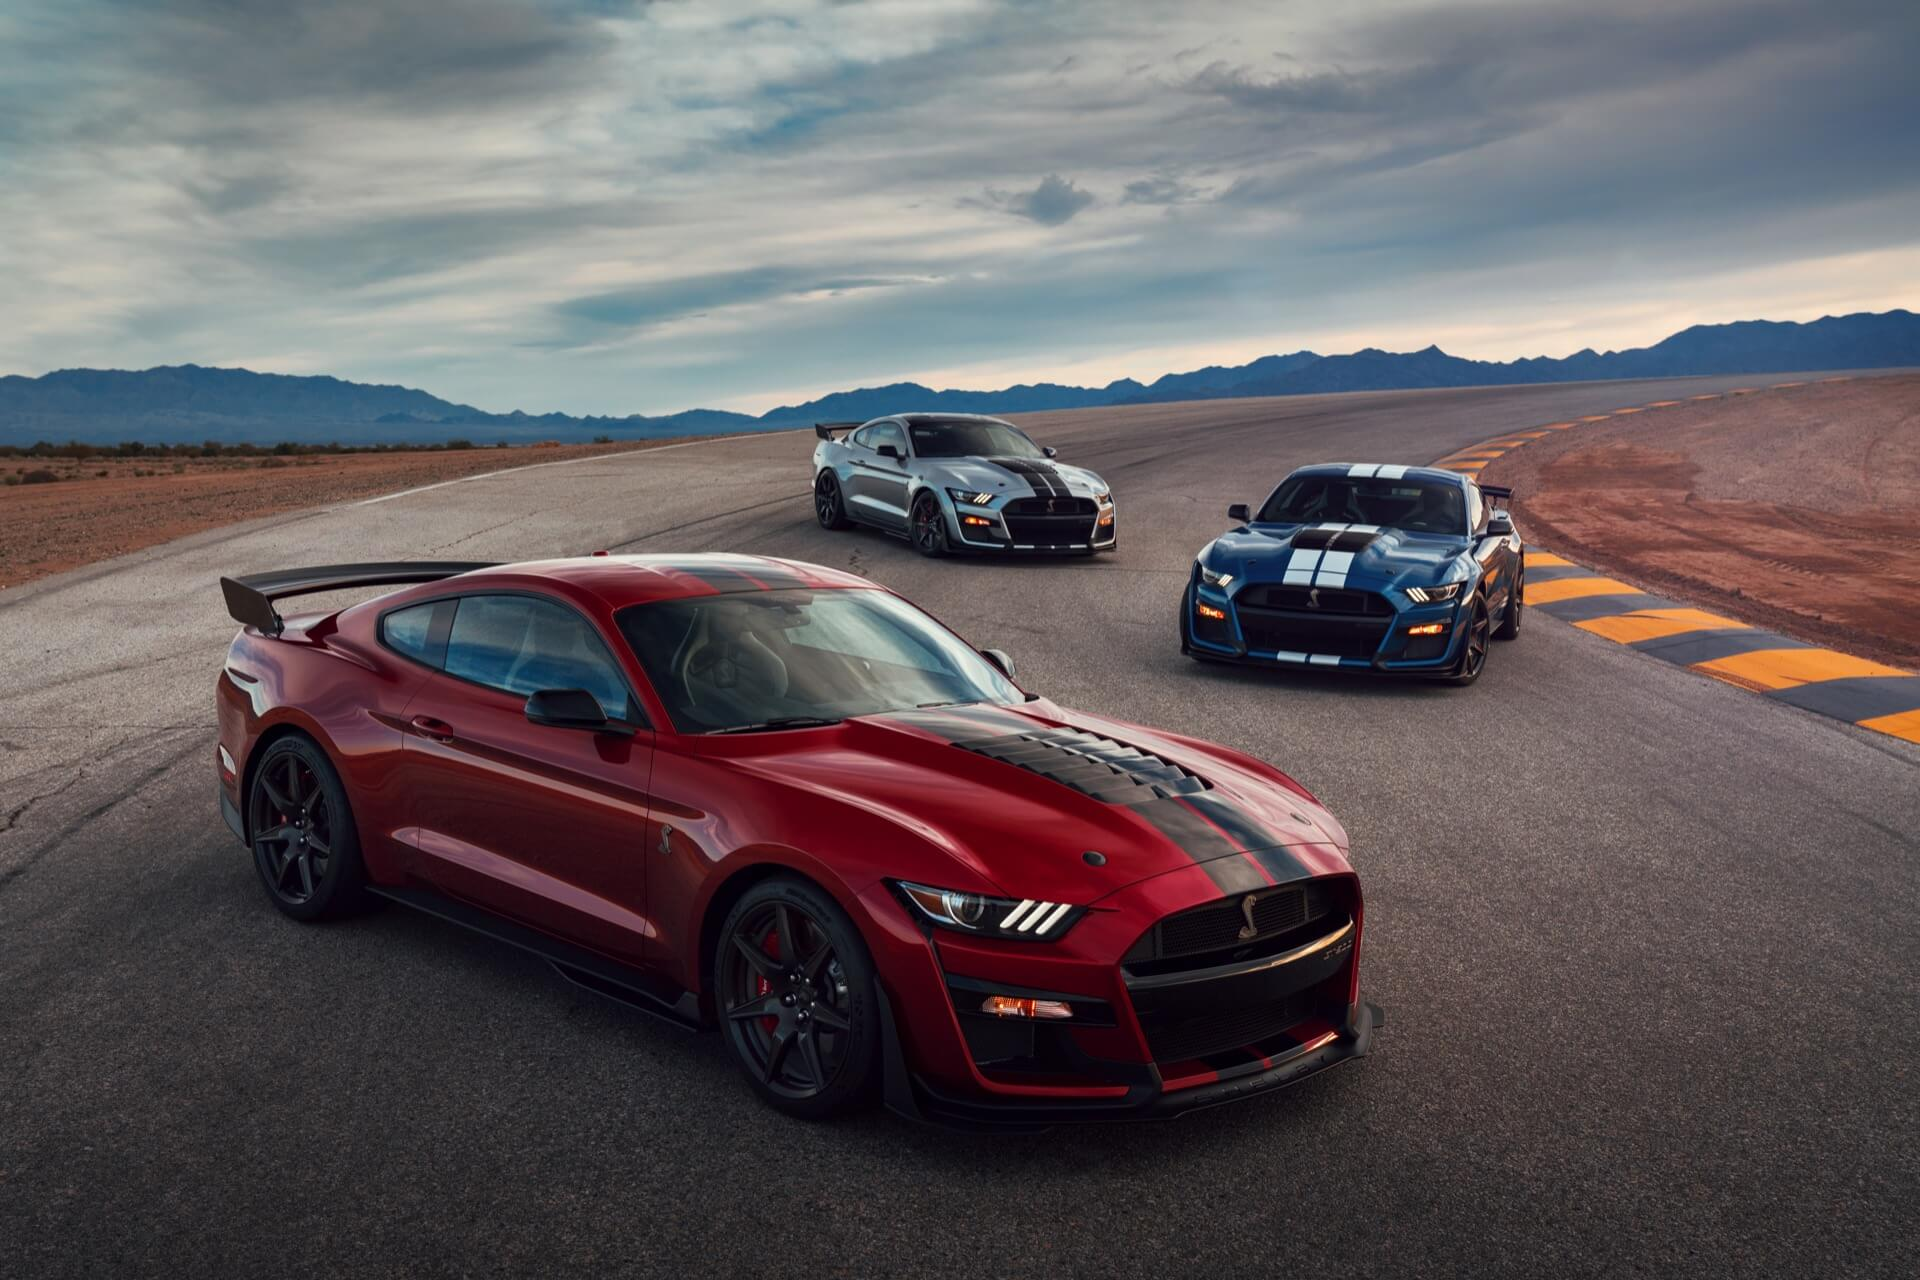 The 2020 ford mustang shelby gt500 is the most powerful production blue oval car ever